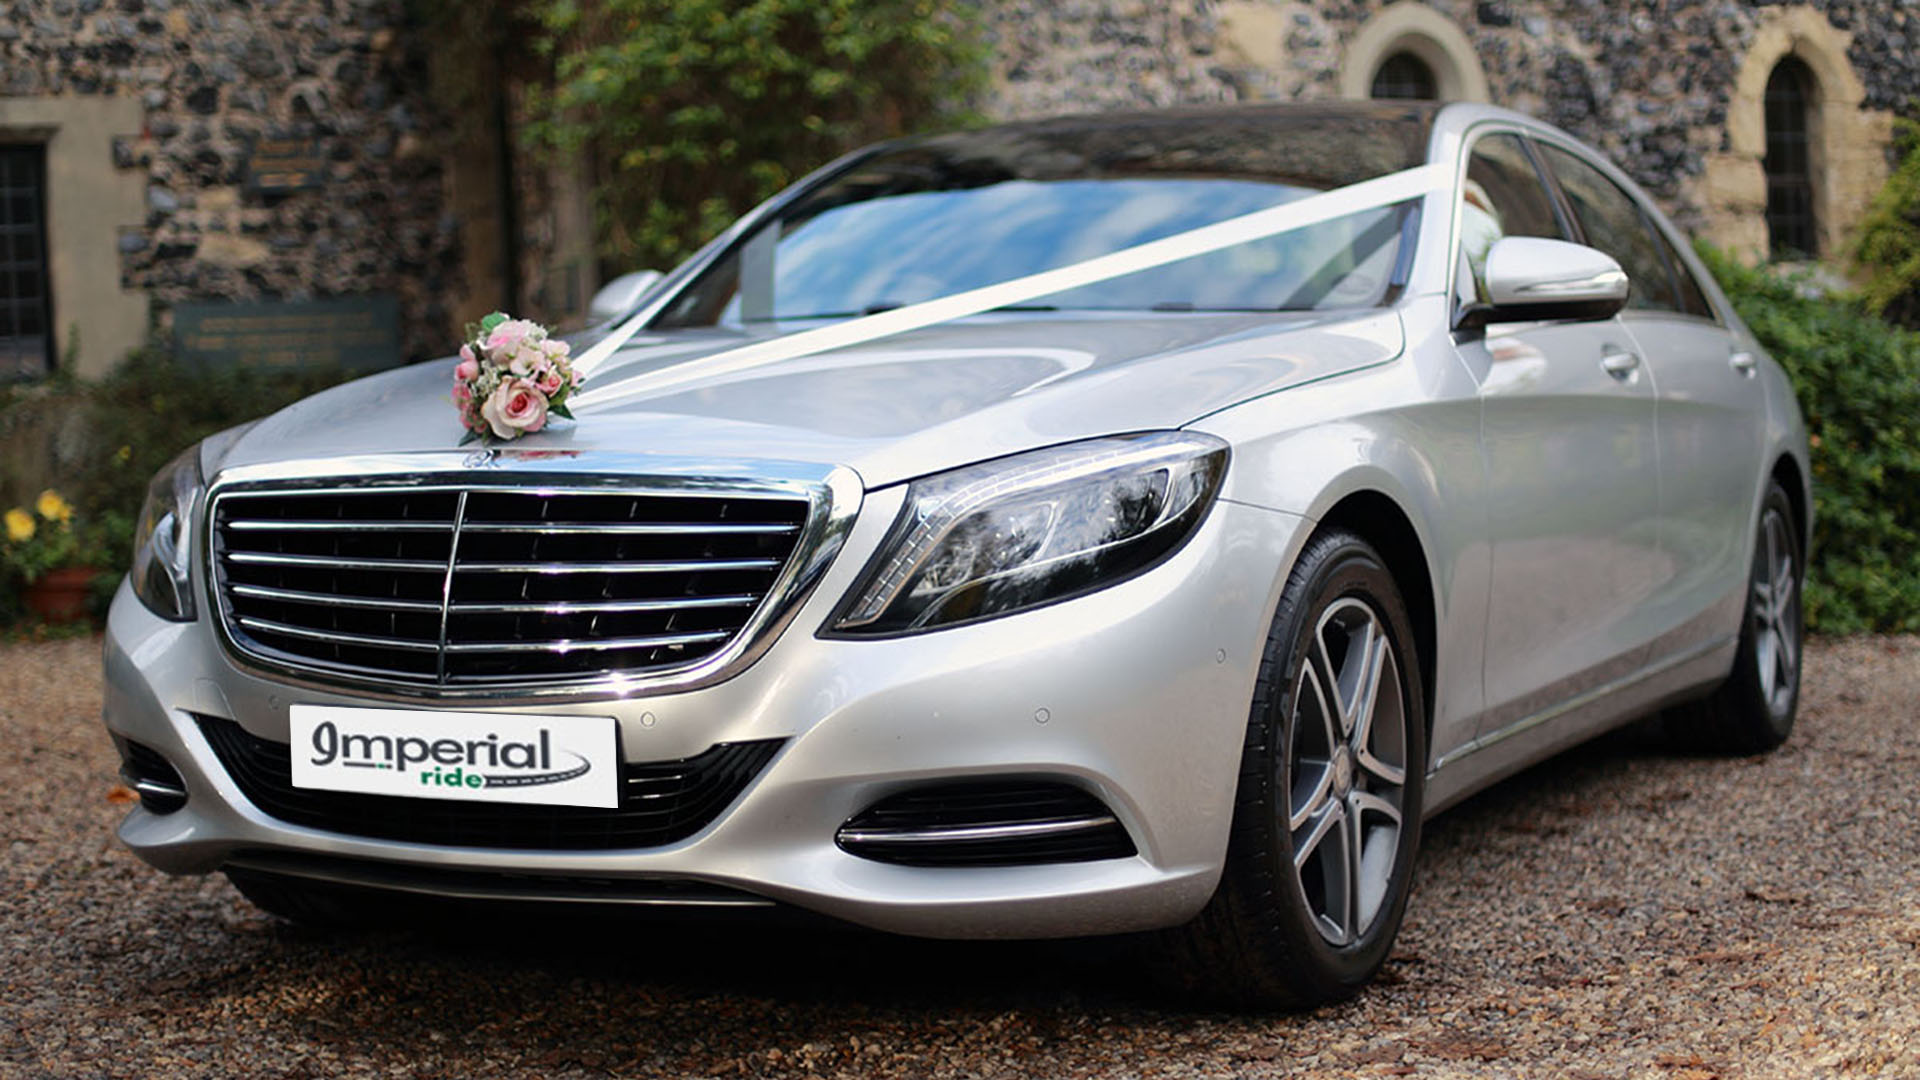 s-class-wedding-hire-in-hillingdon